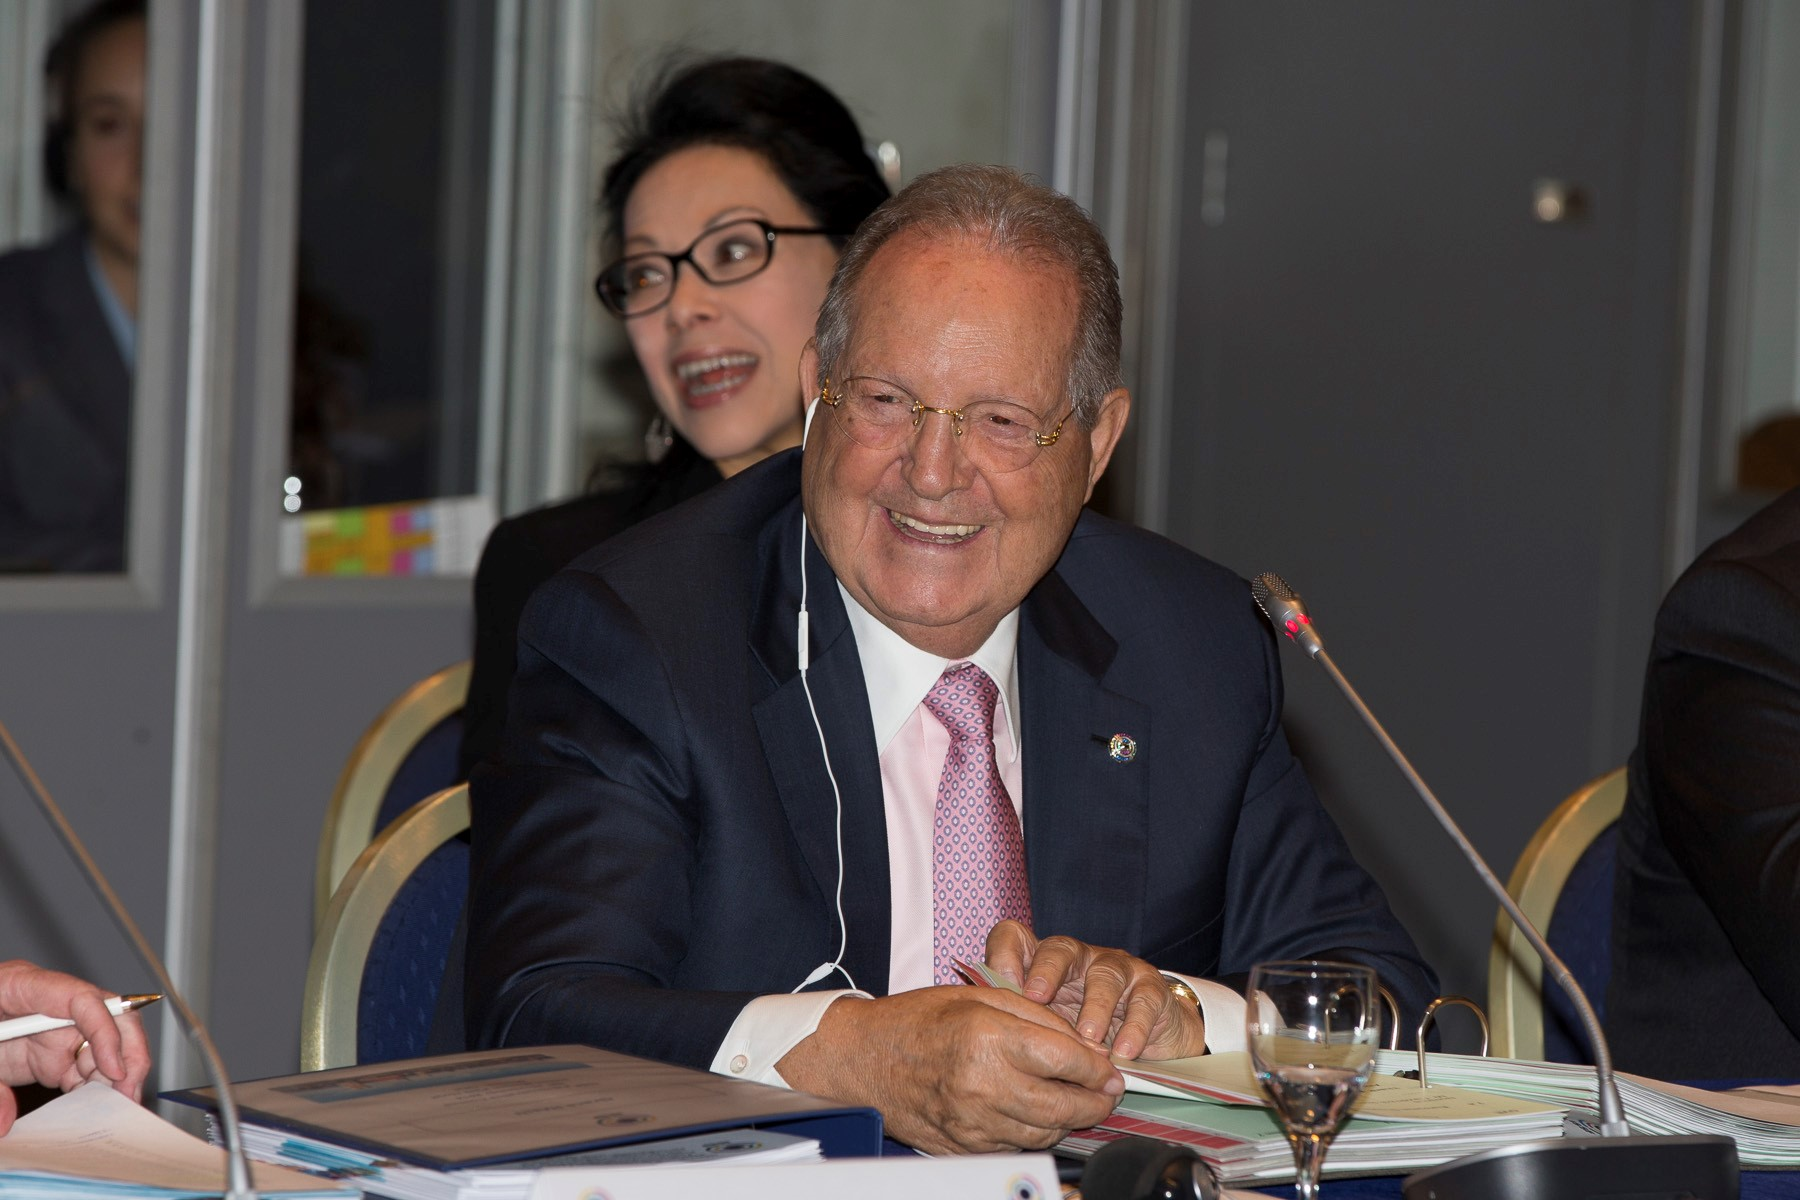 Olegario Vazquez Raña has been re-elected President of the ISSF ©ISSF